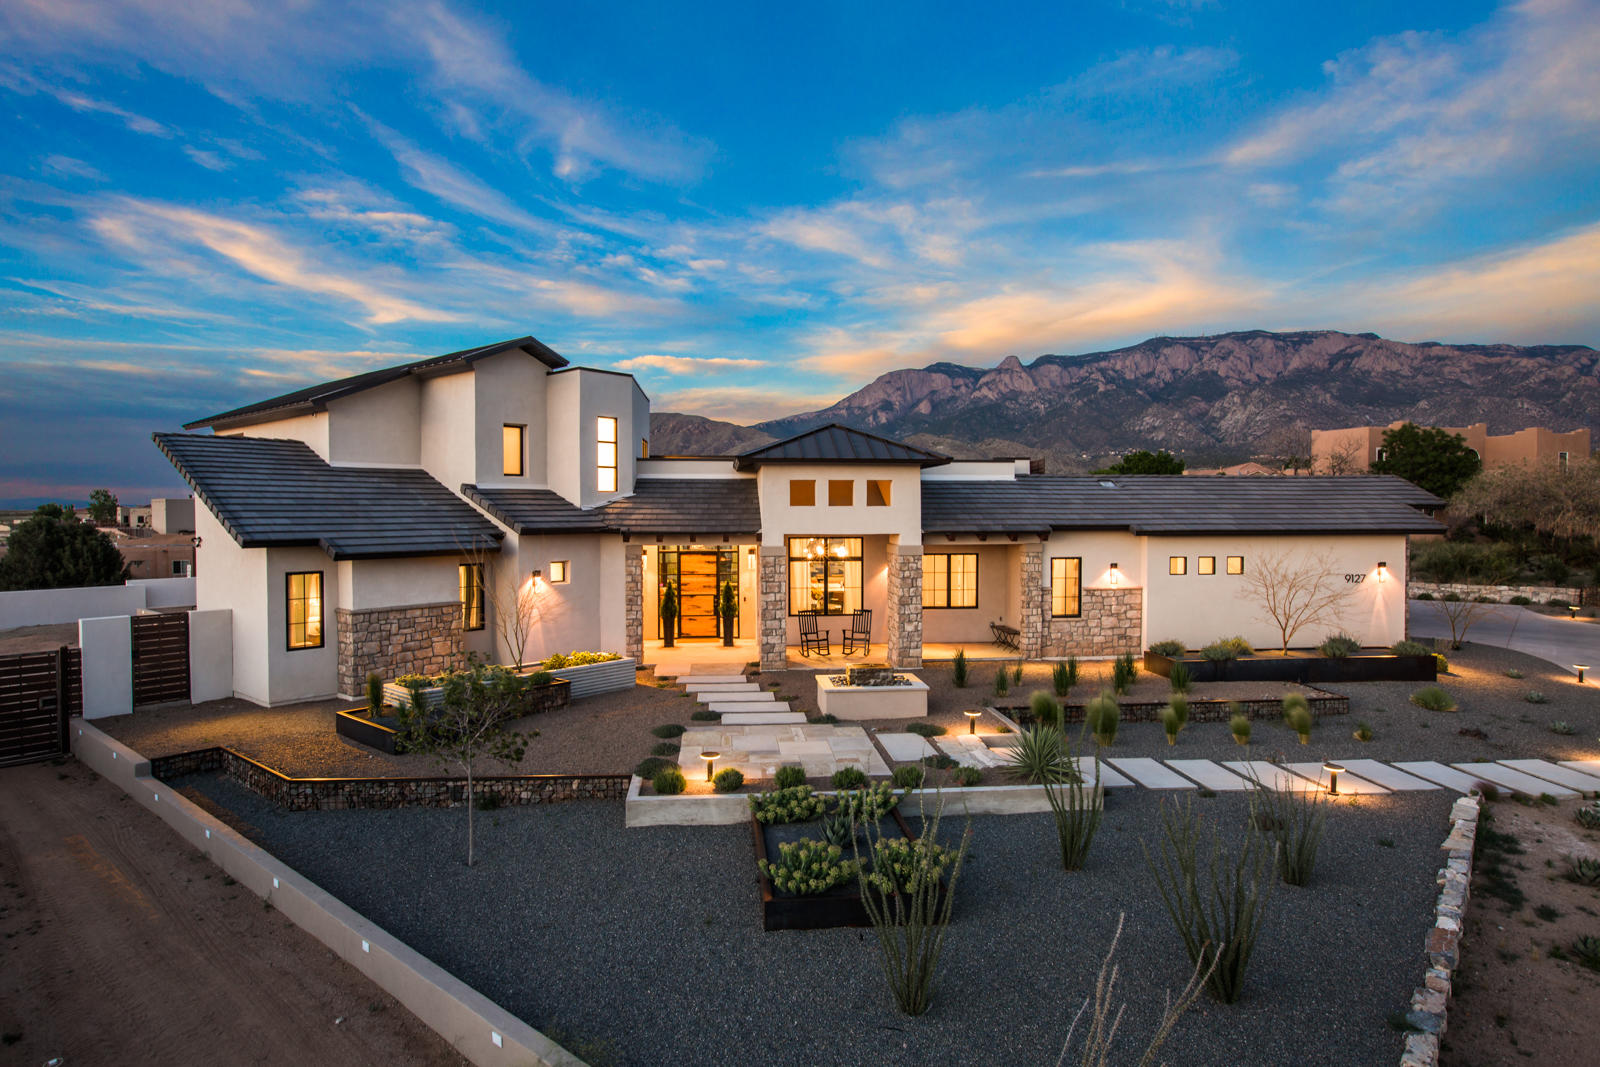 Incredible custom home with exquisite finishes that are both contemporary and timeless. Located in Ventura Estates on a .89 acre lot with STUNNING views of the mountains. This completely custom home features 4 spacious bedrooms, 4.5 baths, oversized 3 car garage, entertainers dream kitchen, open concept with indoor/outdoor living, temperature controlled wine wall and so much more! The gorgeous master bedroom on the main floor includes a seating area, huge master bathroom with custom cabinetry, stand alone tub, walk in shower, and walk in closet which leads to the laundry room. The kitchen features gorgeous Marc Sower custom cabinets, quartz countertops, top of the line appliances and built in eating area! Breathtaking views from the back patio to enjoy in this oasis backyard.